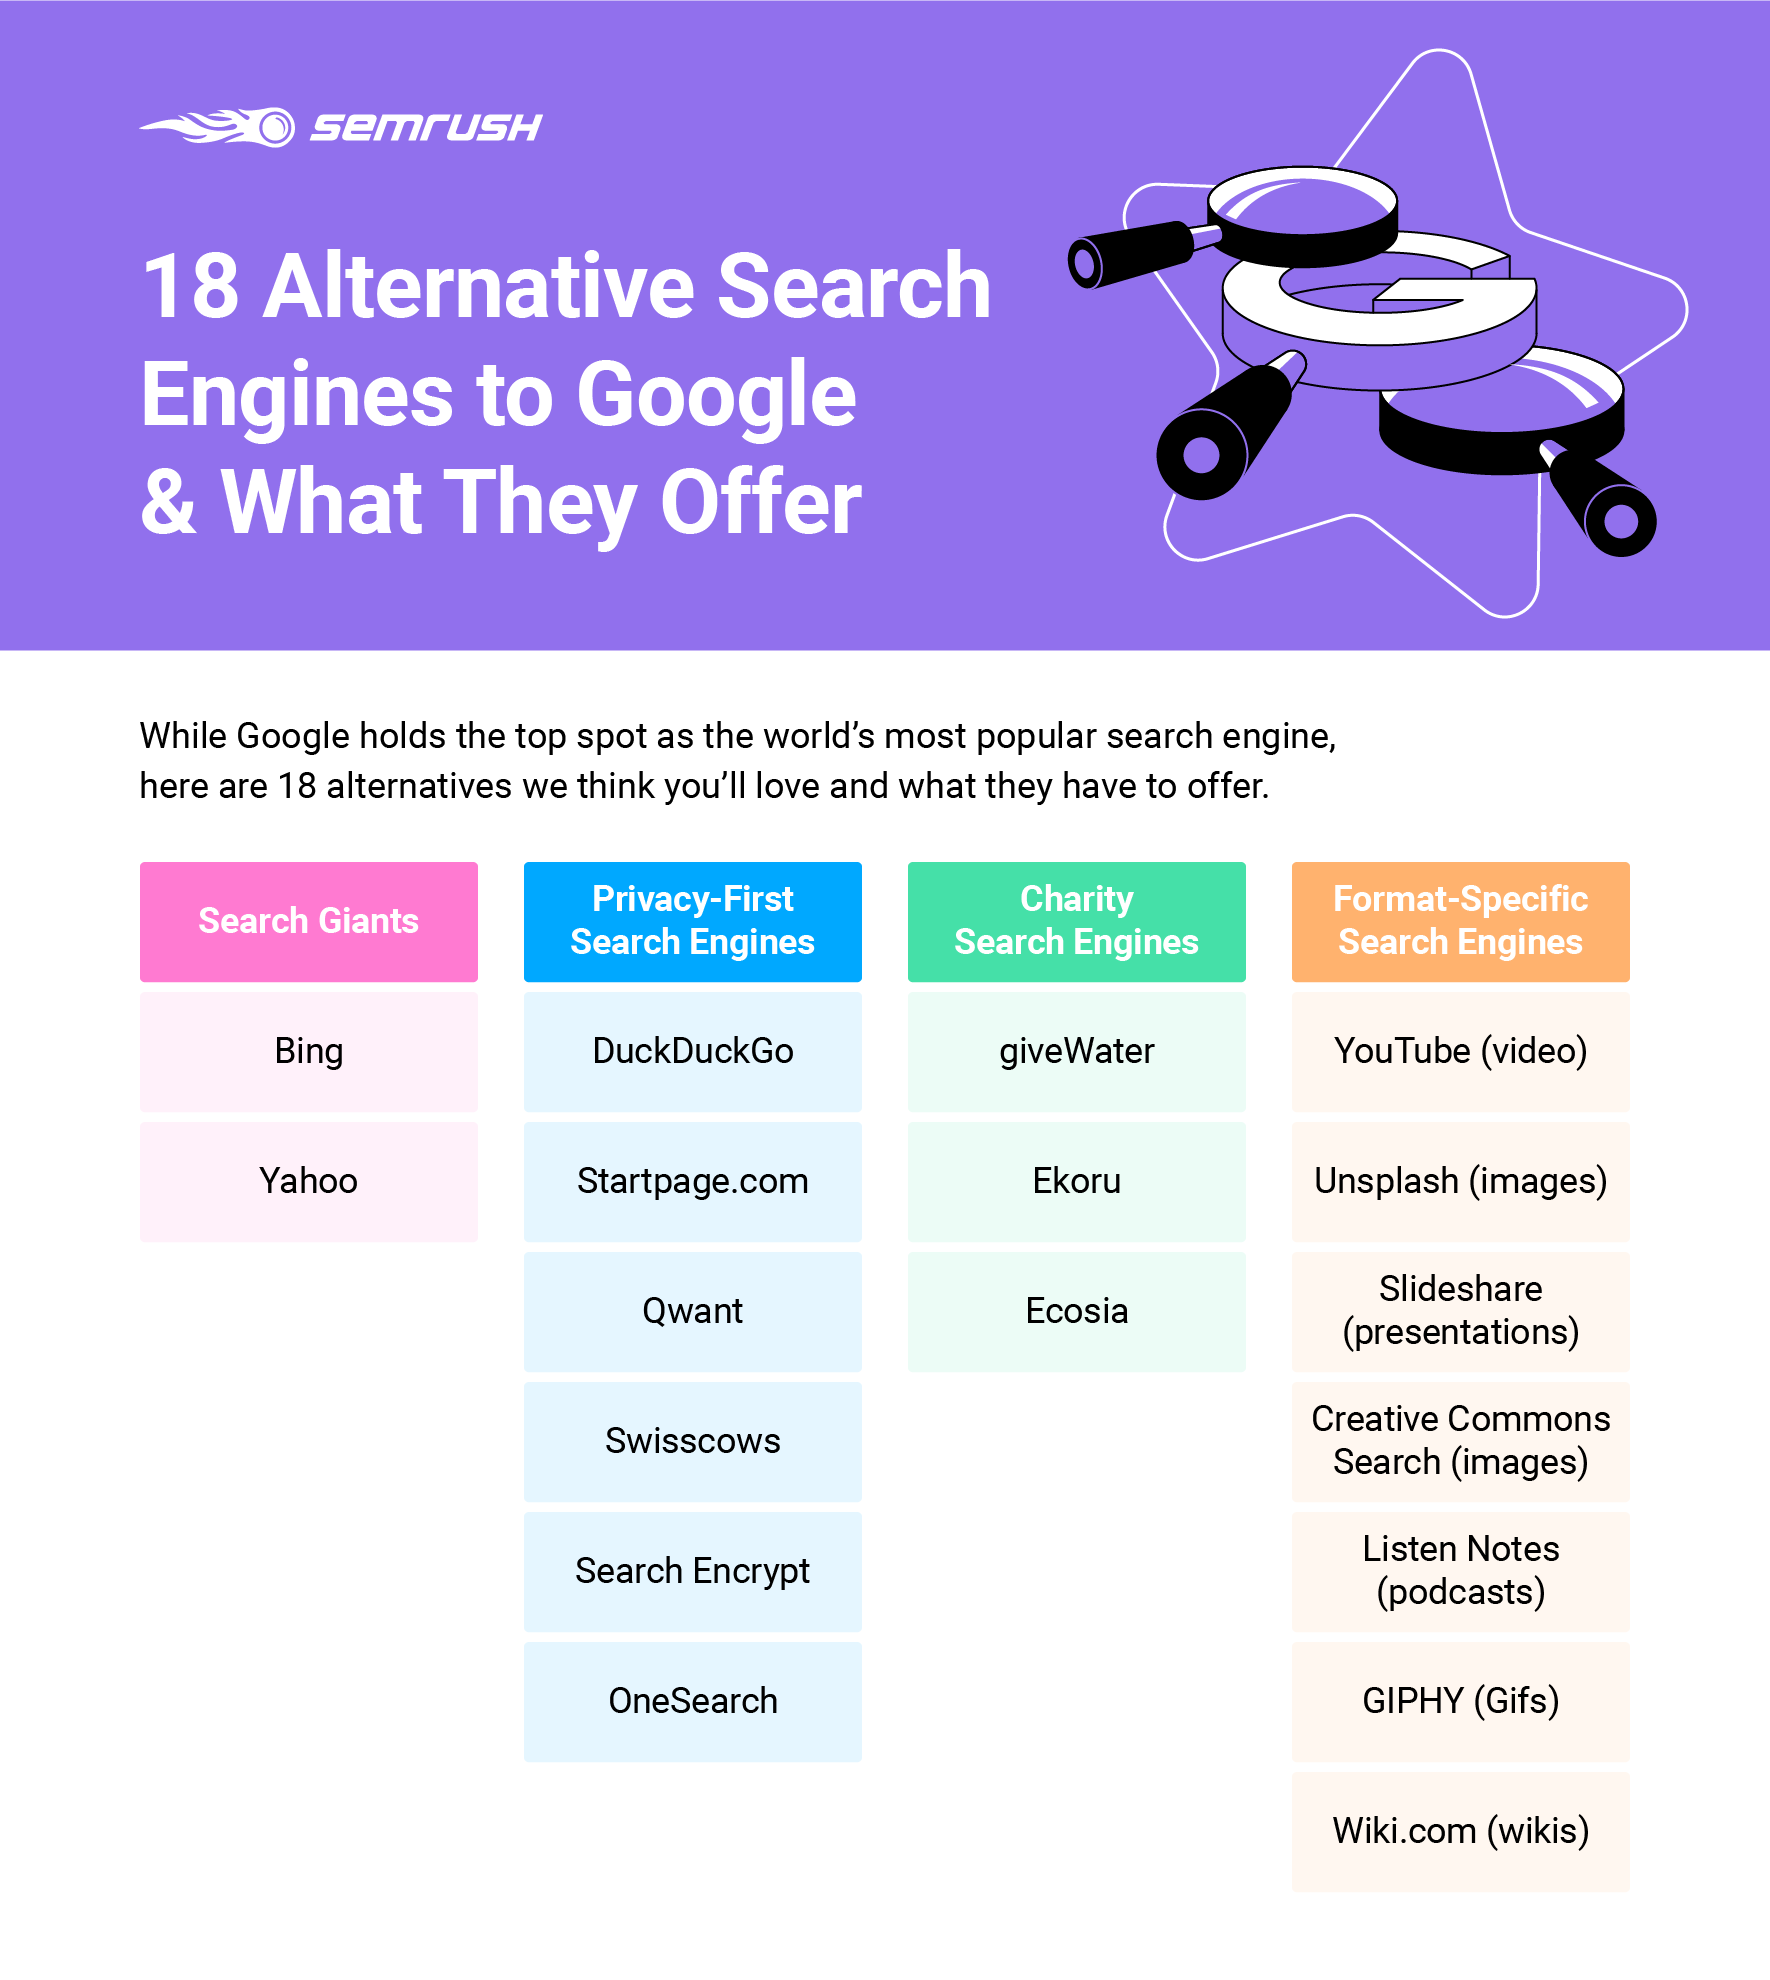 List of Different Search Engines